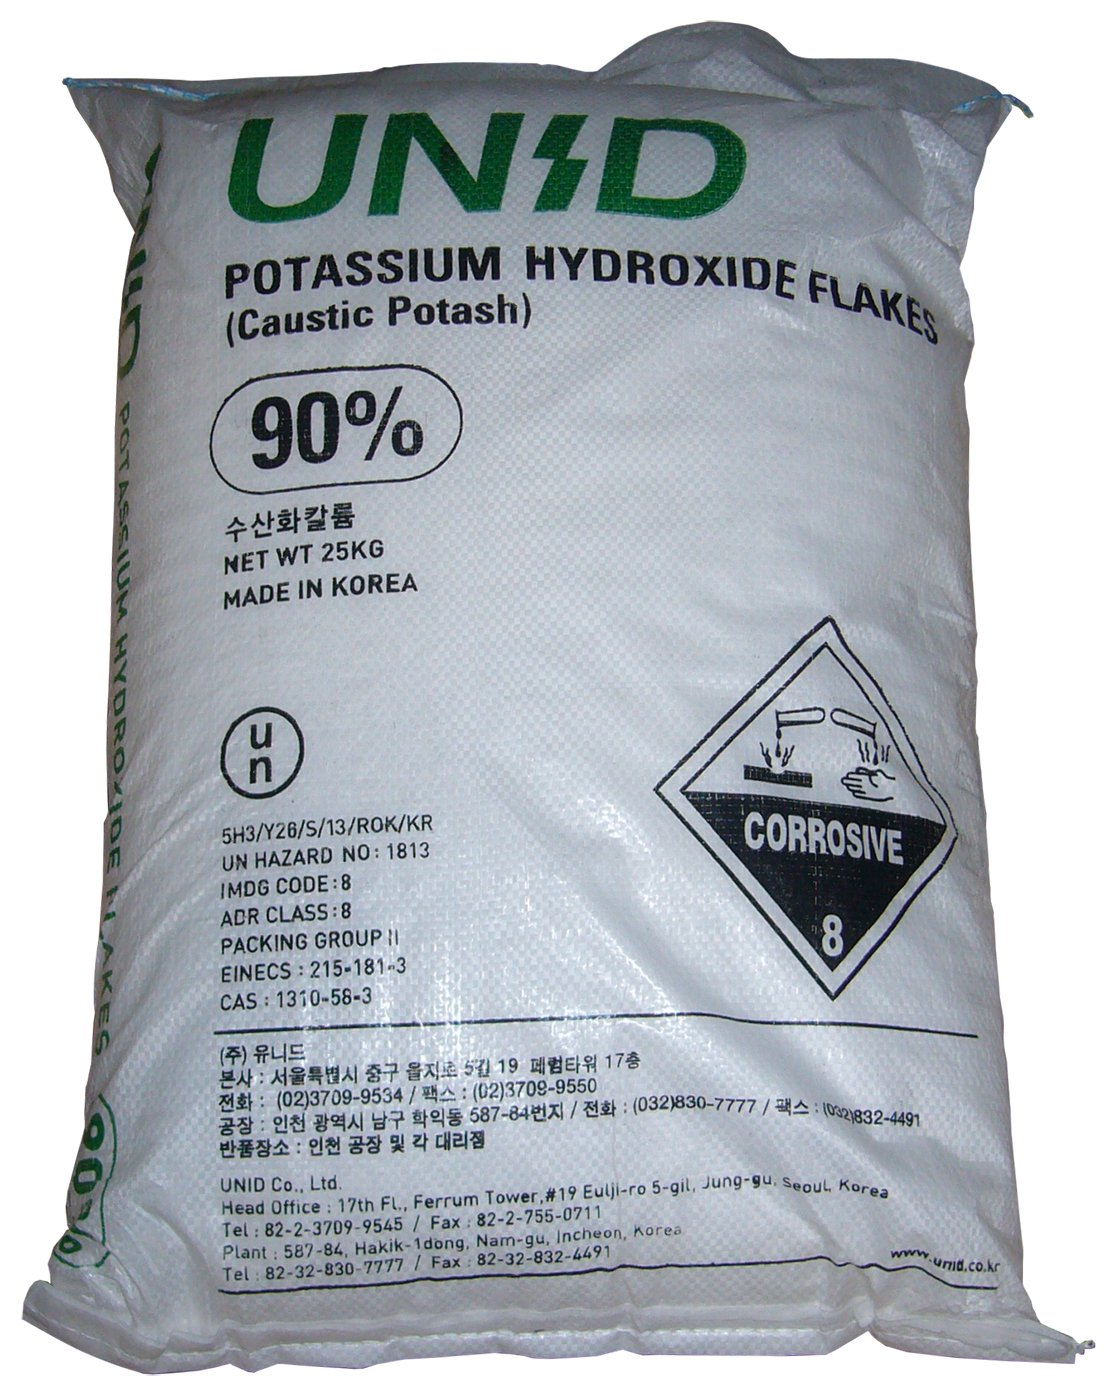 Potassium Hydroxide (Caustic Potash) [KOH] [CAS_1310-58-3] 90+% FCC/ Food Grade, White Flake (55.12 Lbs Bag) sold by Wintersun Chemical by UNID (Image #1)